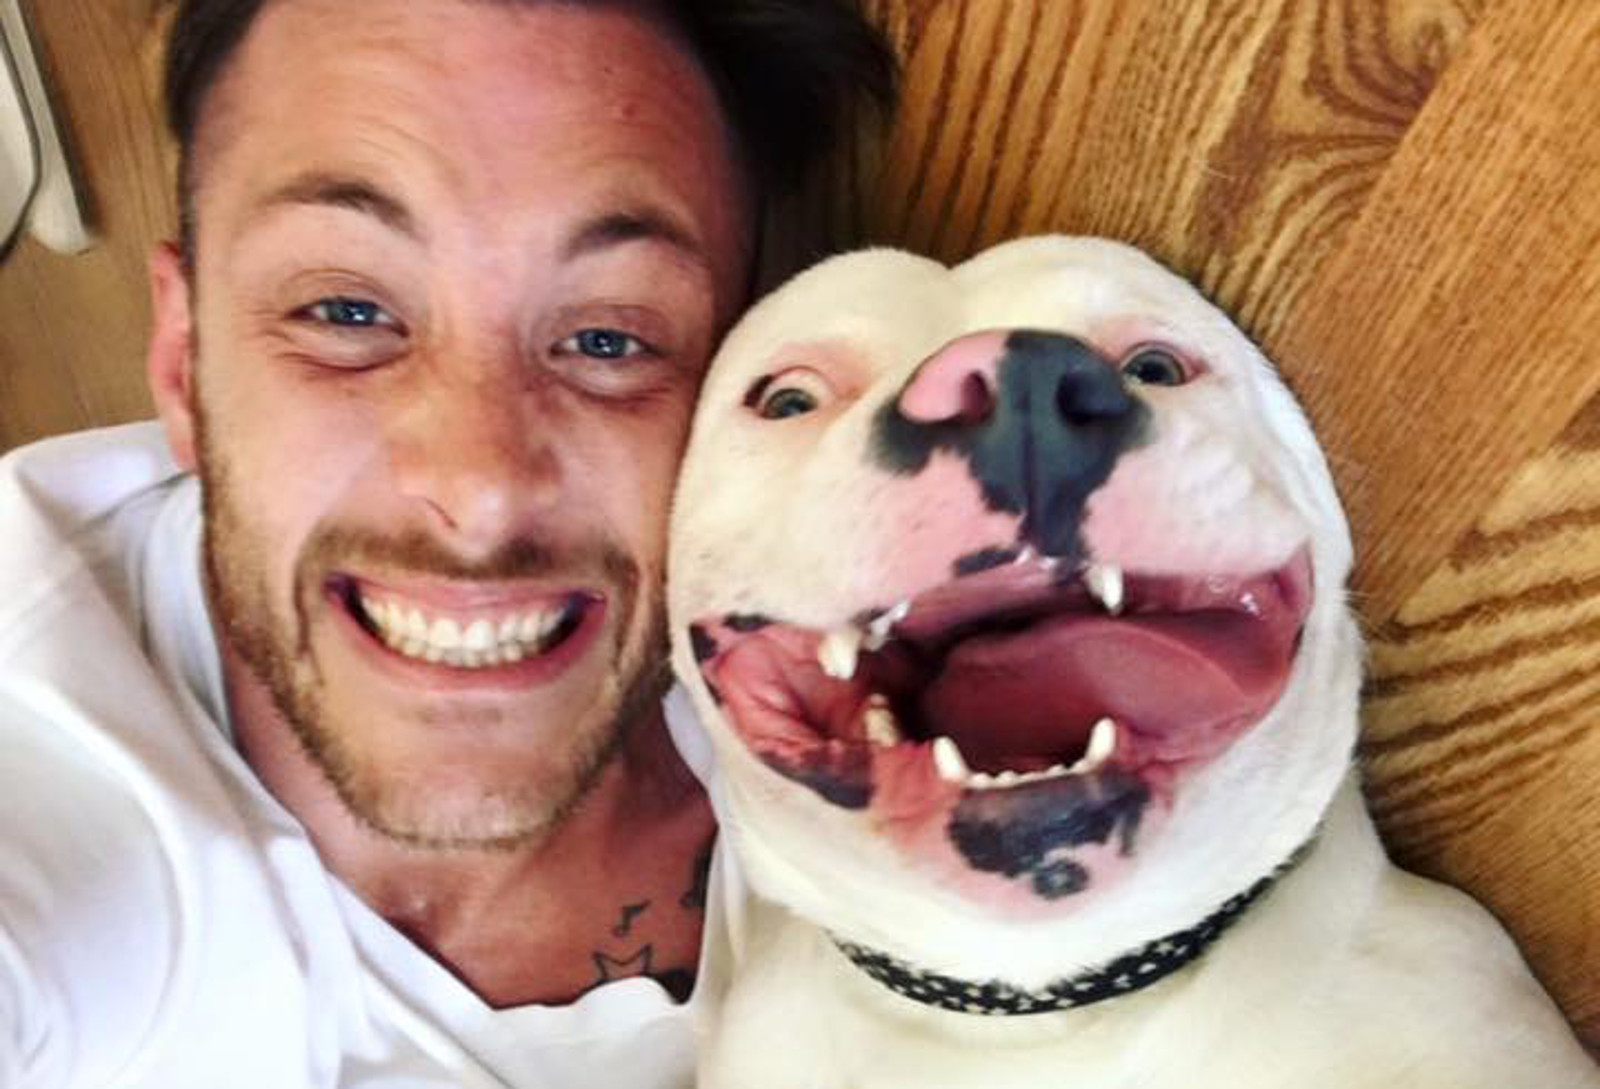 Let's Keep This Dog Smiling by Letting Him Stay With His Humans!!!